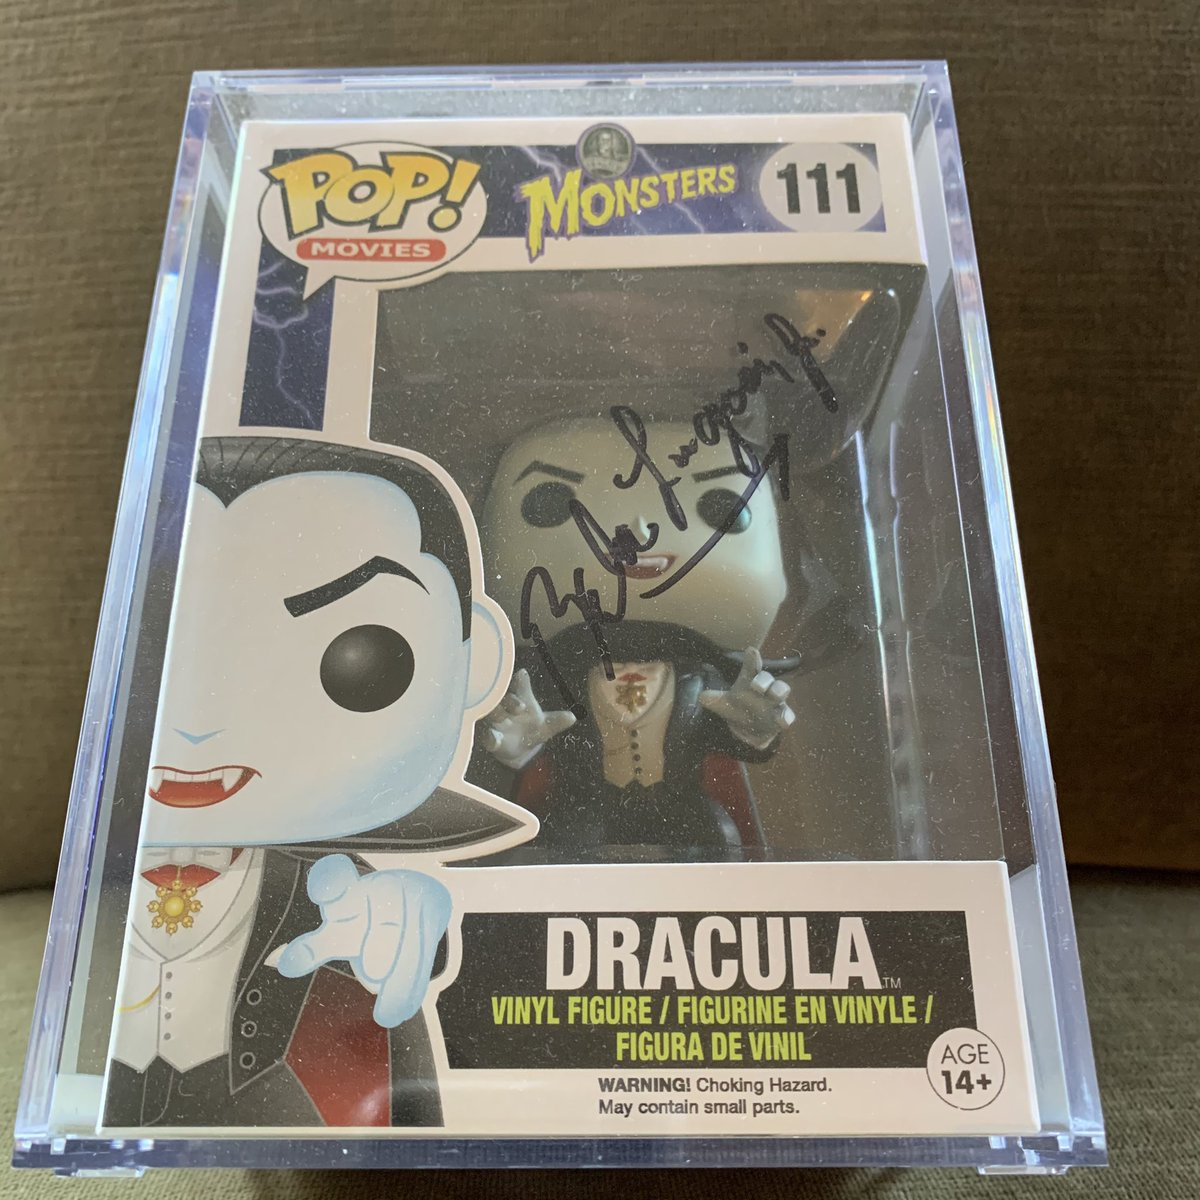 My autographed Dracula signed by Bela Lugosi, Jr.   Bela Lugosi, Sr was not... available. @originalfunko  #lugosi #dracula #funkopop #universalmonsters #autograph #belalugosi #halloween https://t.co/NLHO5Lc4Z2